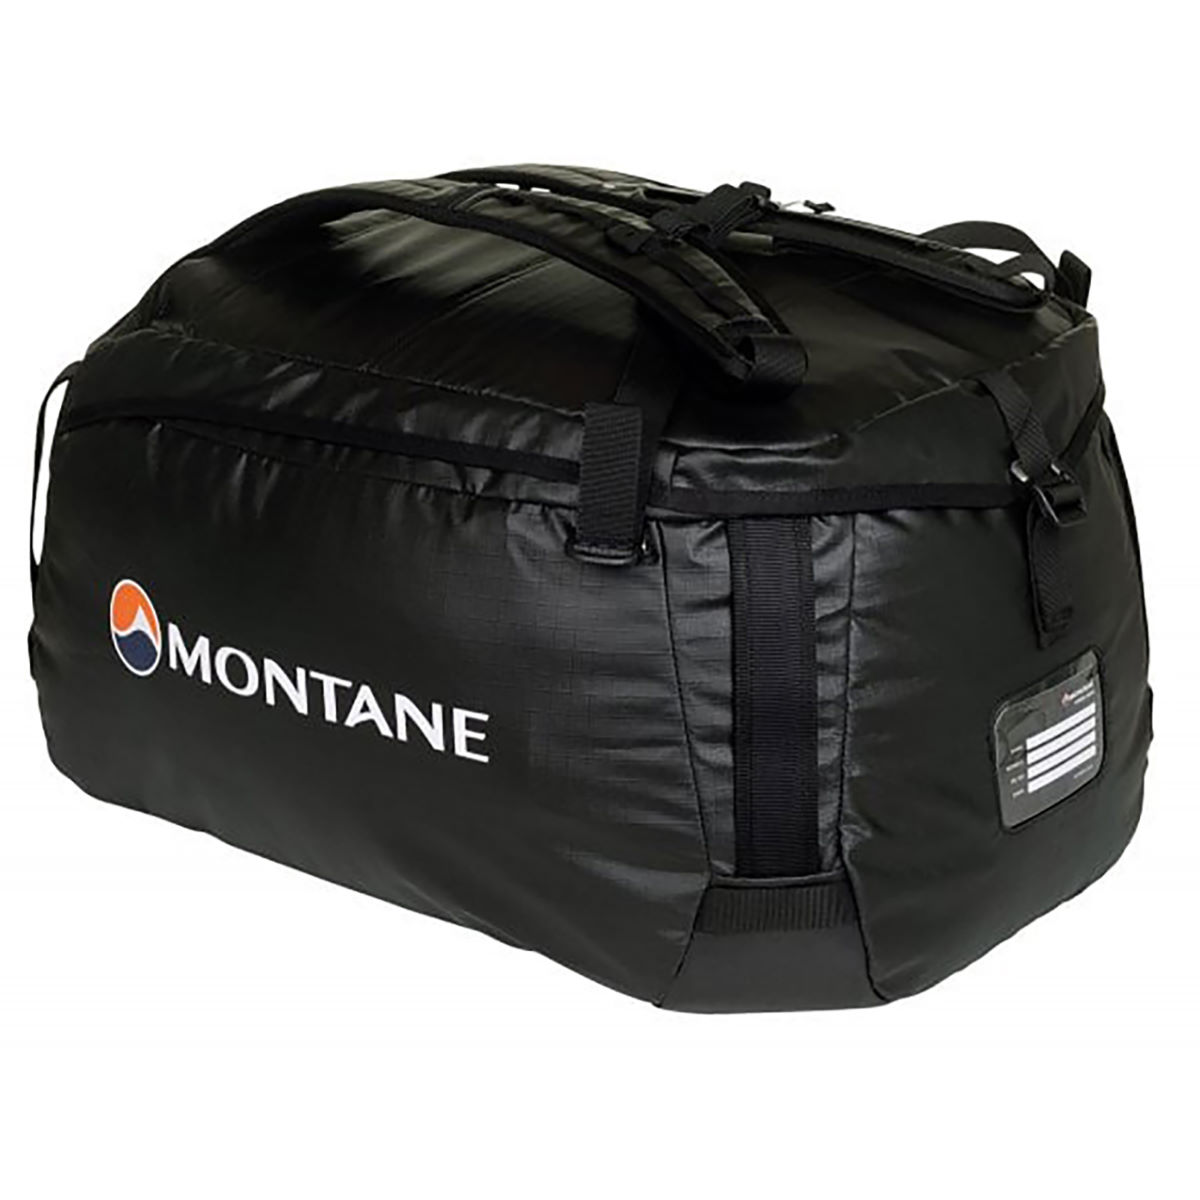 Montane Transition 40 Duffle Bag   Transition Bags